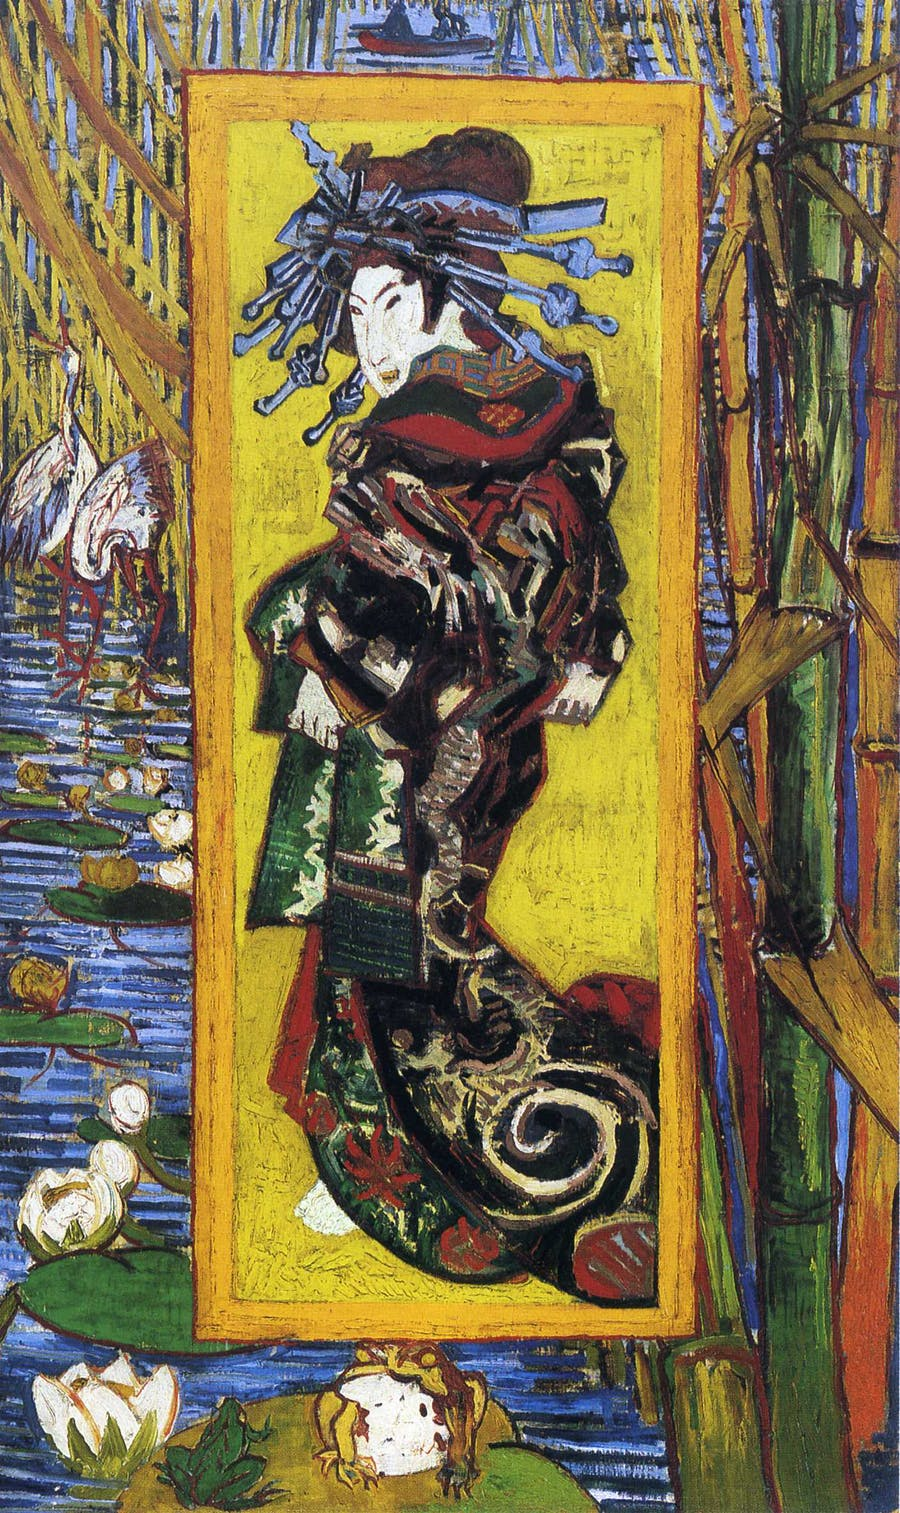 Vincent van Gogh, 'Japonaiserie: Oiran, after Kesaï Eisen', 1887. Photo: artvan-Gogh